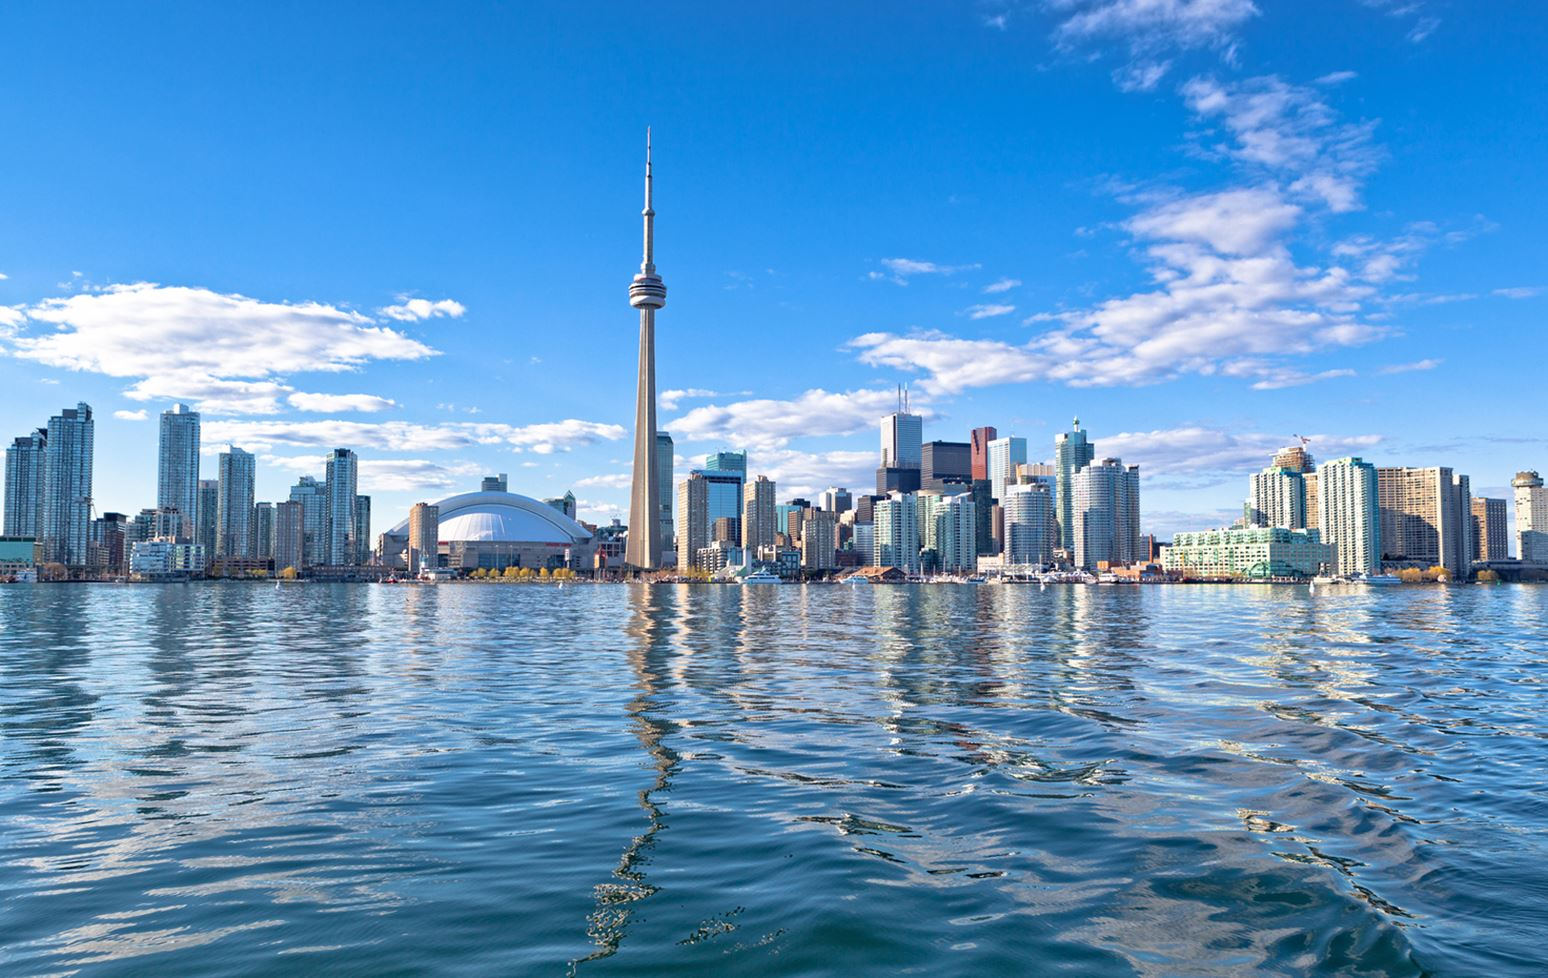 Why Amazon should choose Toronto